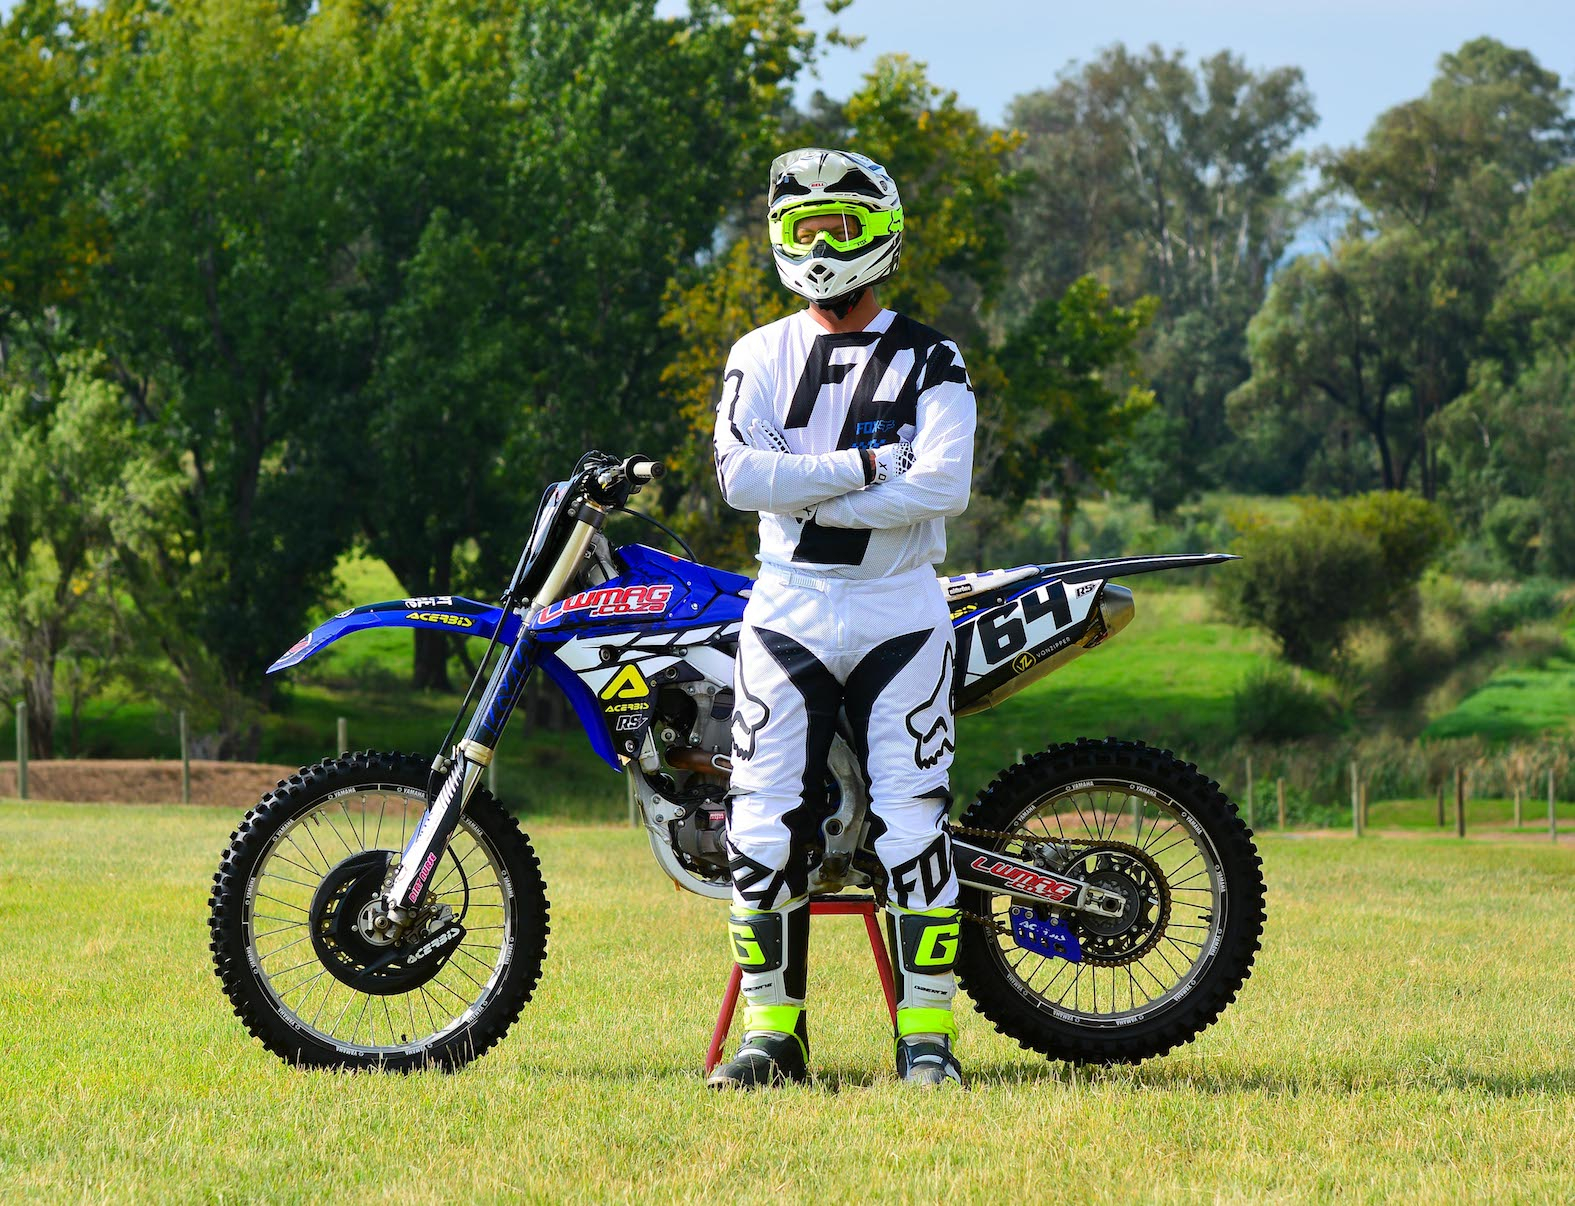 We review the 2018 Fox 180 Mastar Airline motocross kit